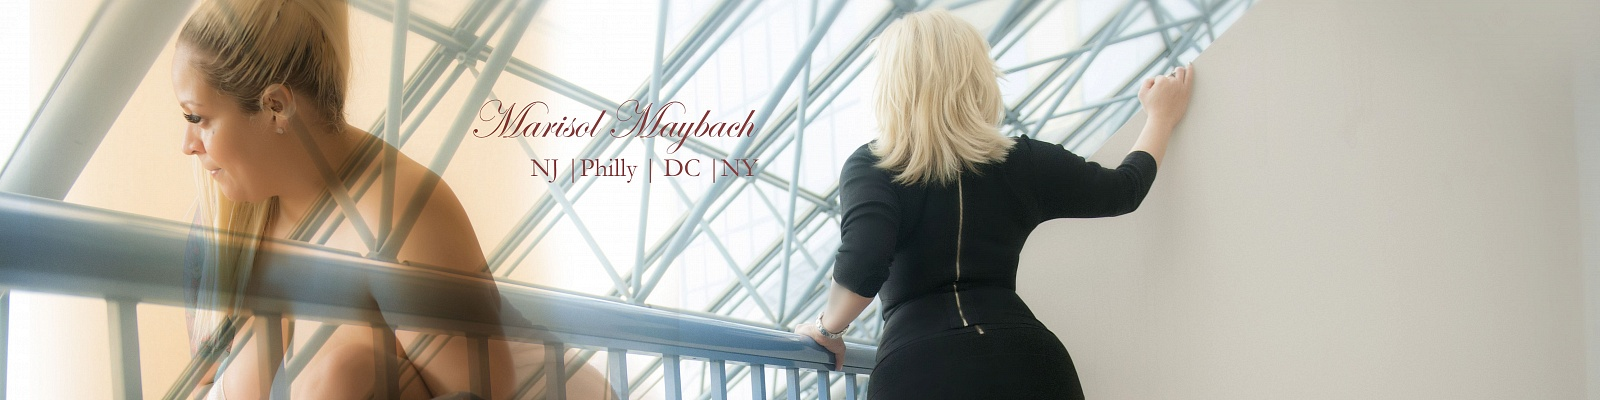 Miss Marisol Maybach's Cover Photo